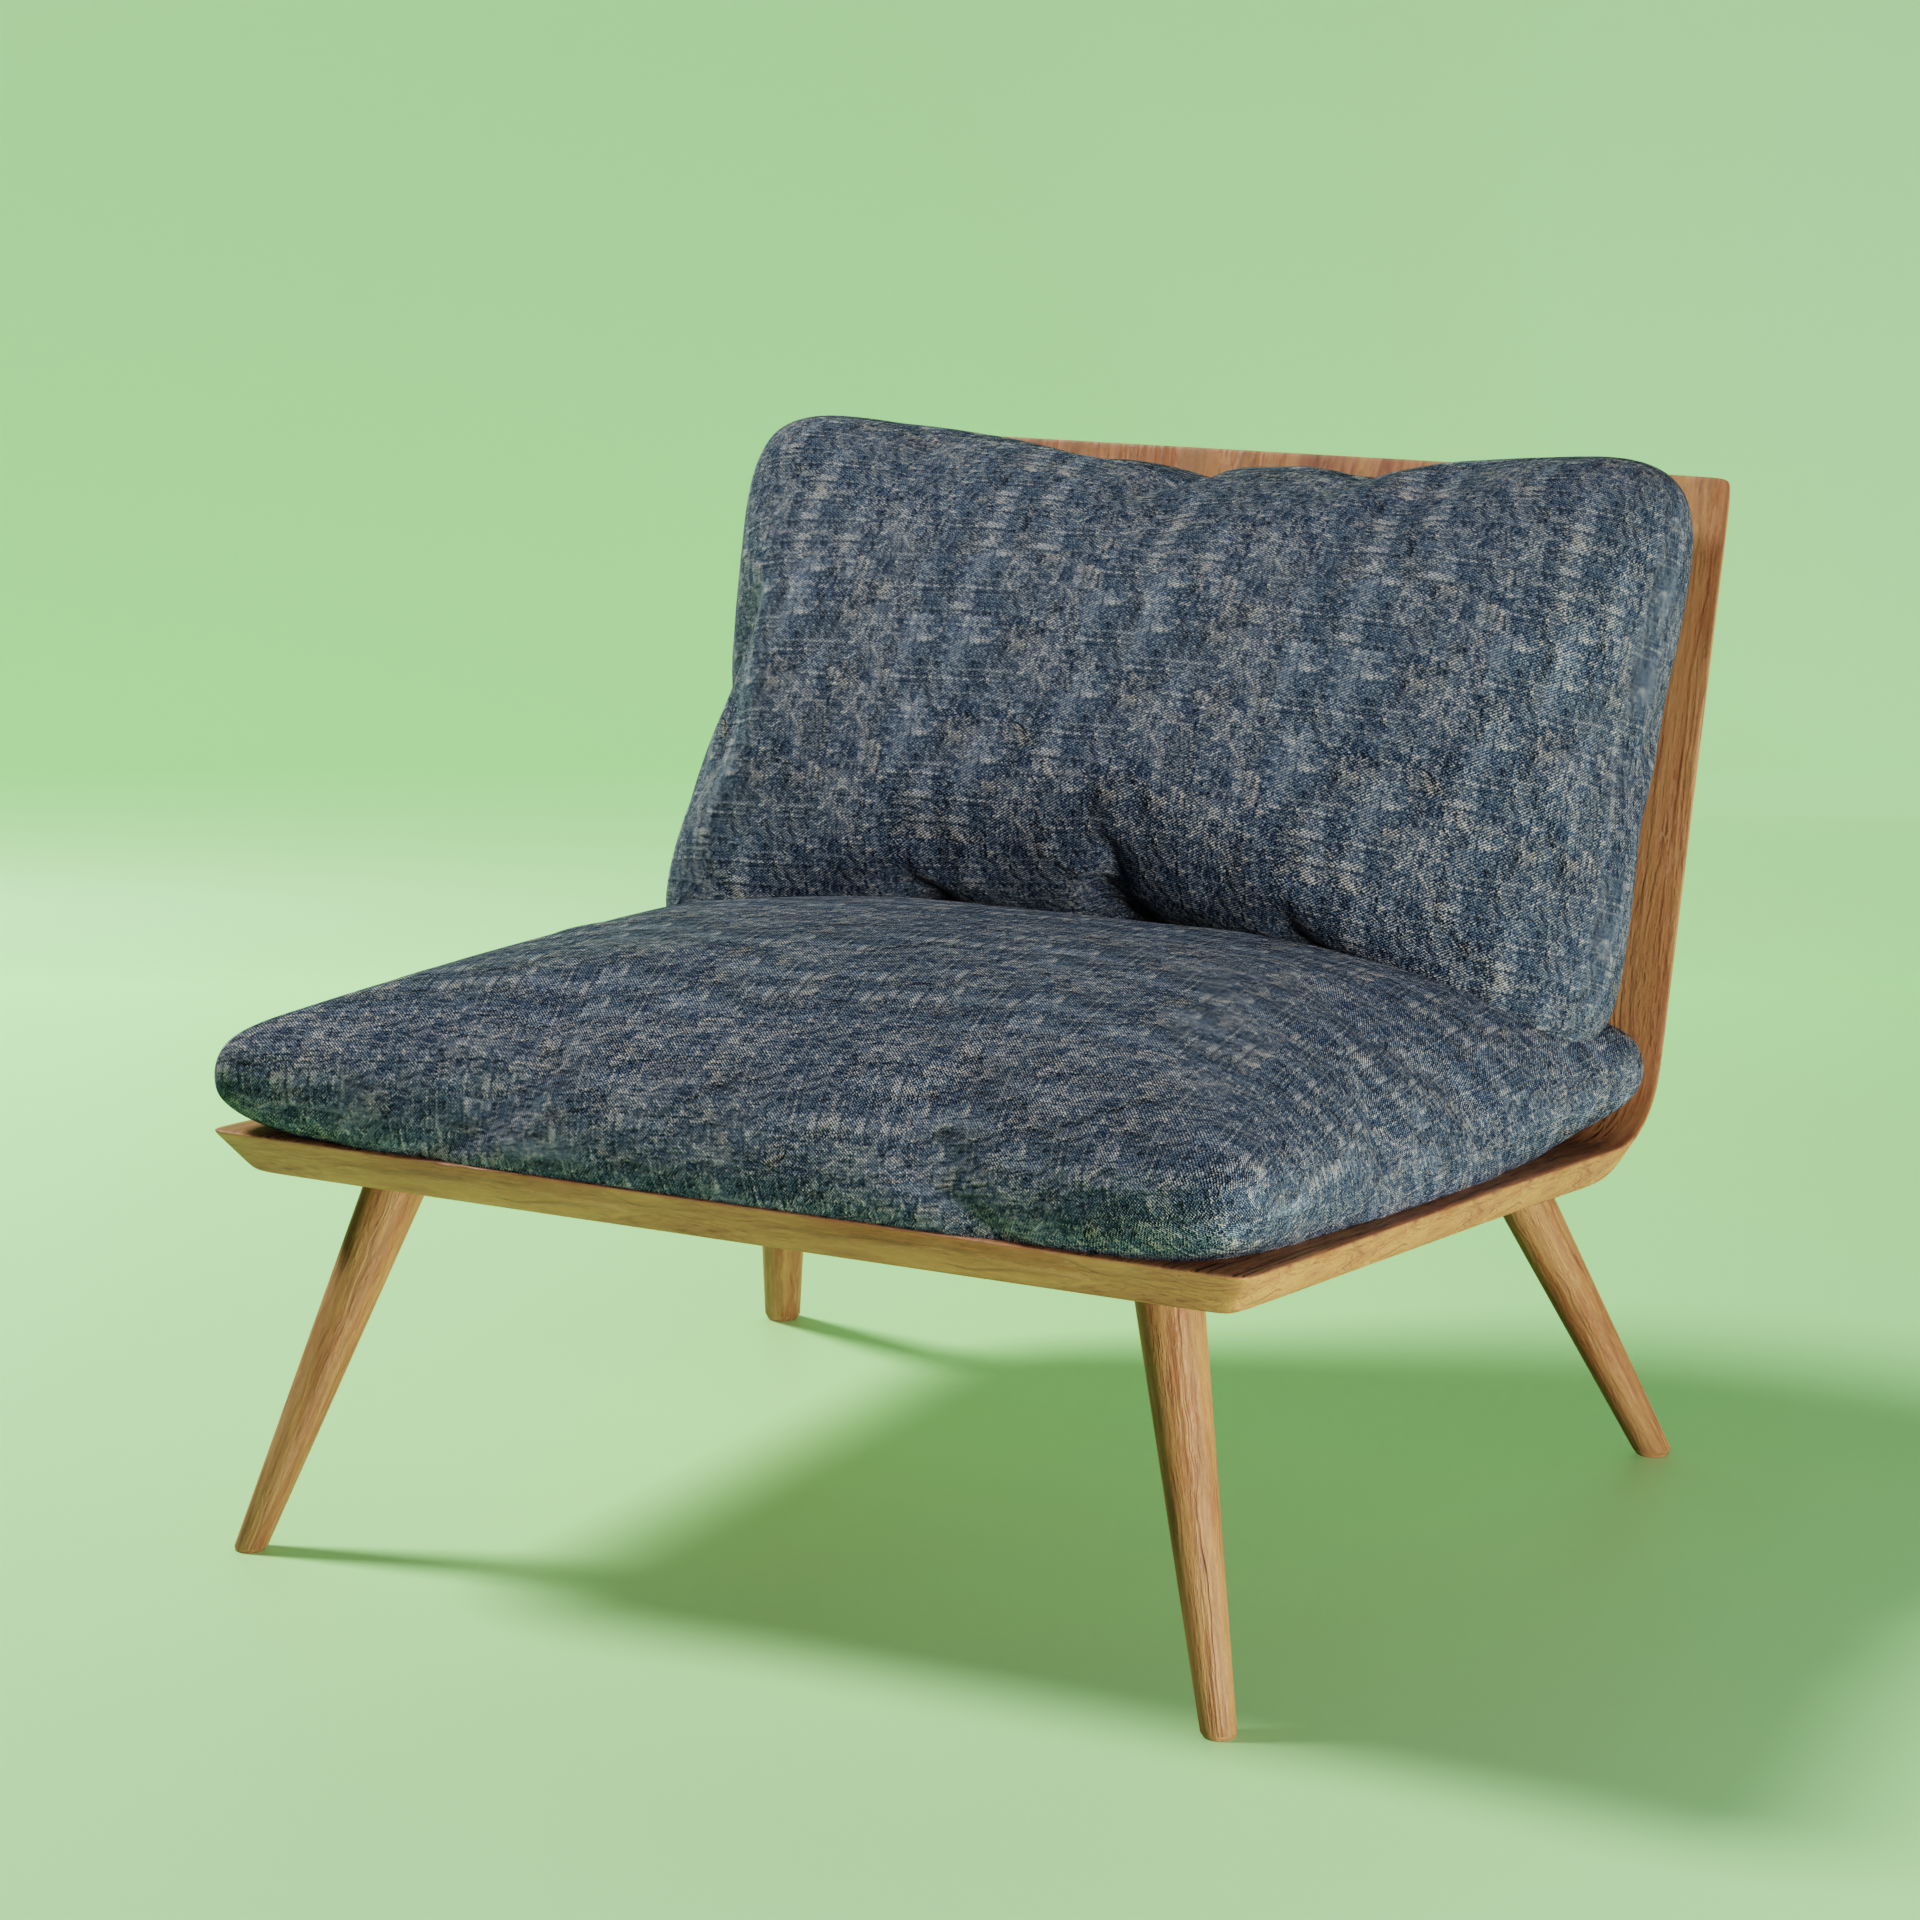 Lounge Chair preview image 1